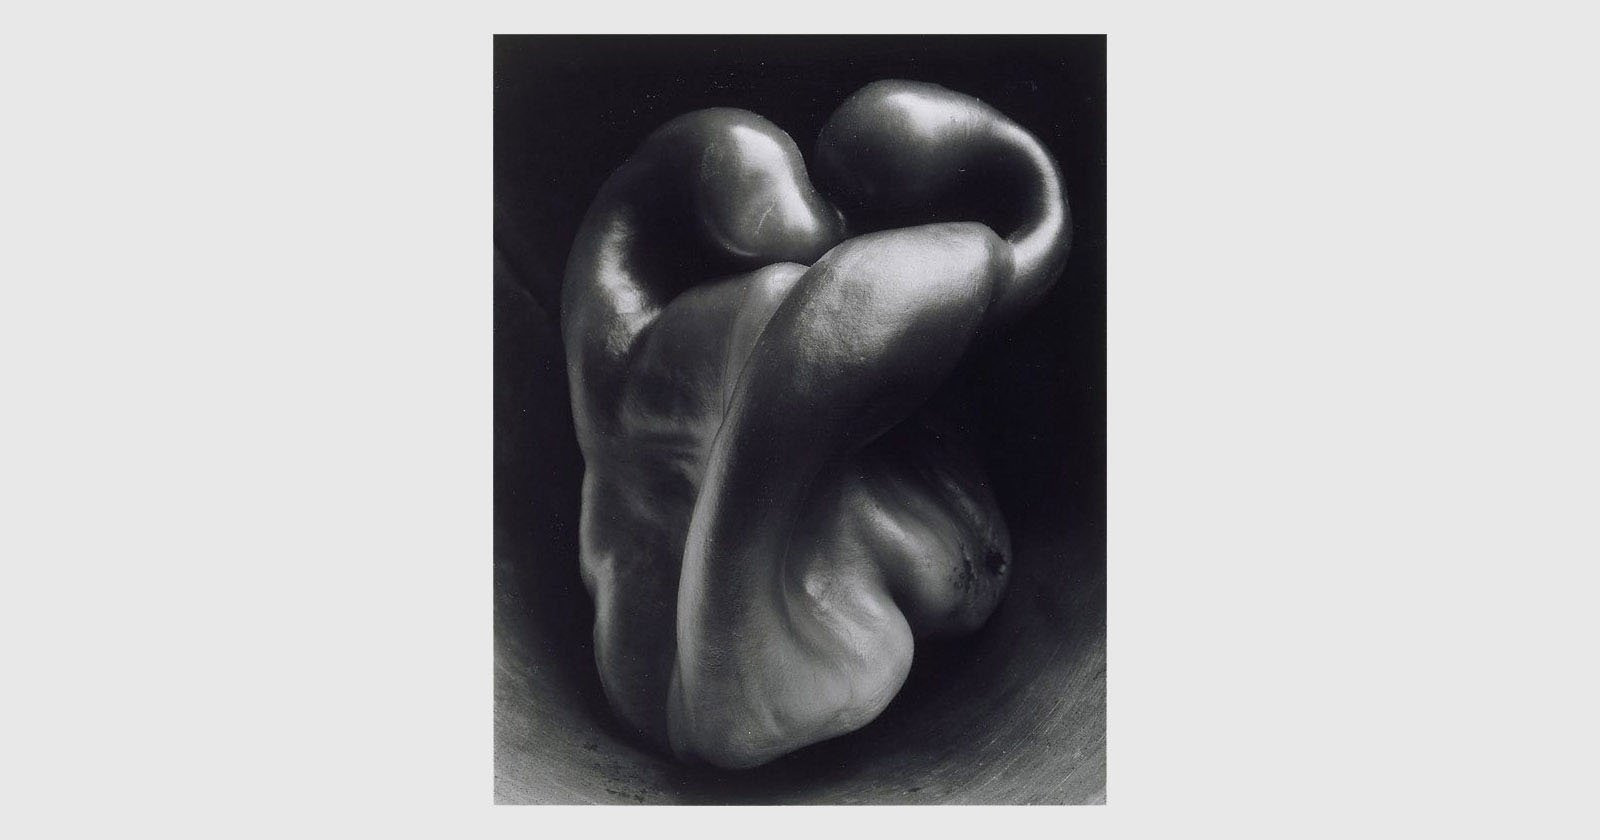 This Famous Pepper Photo by Edward Weston Was a 4hr  Exposure at f/240